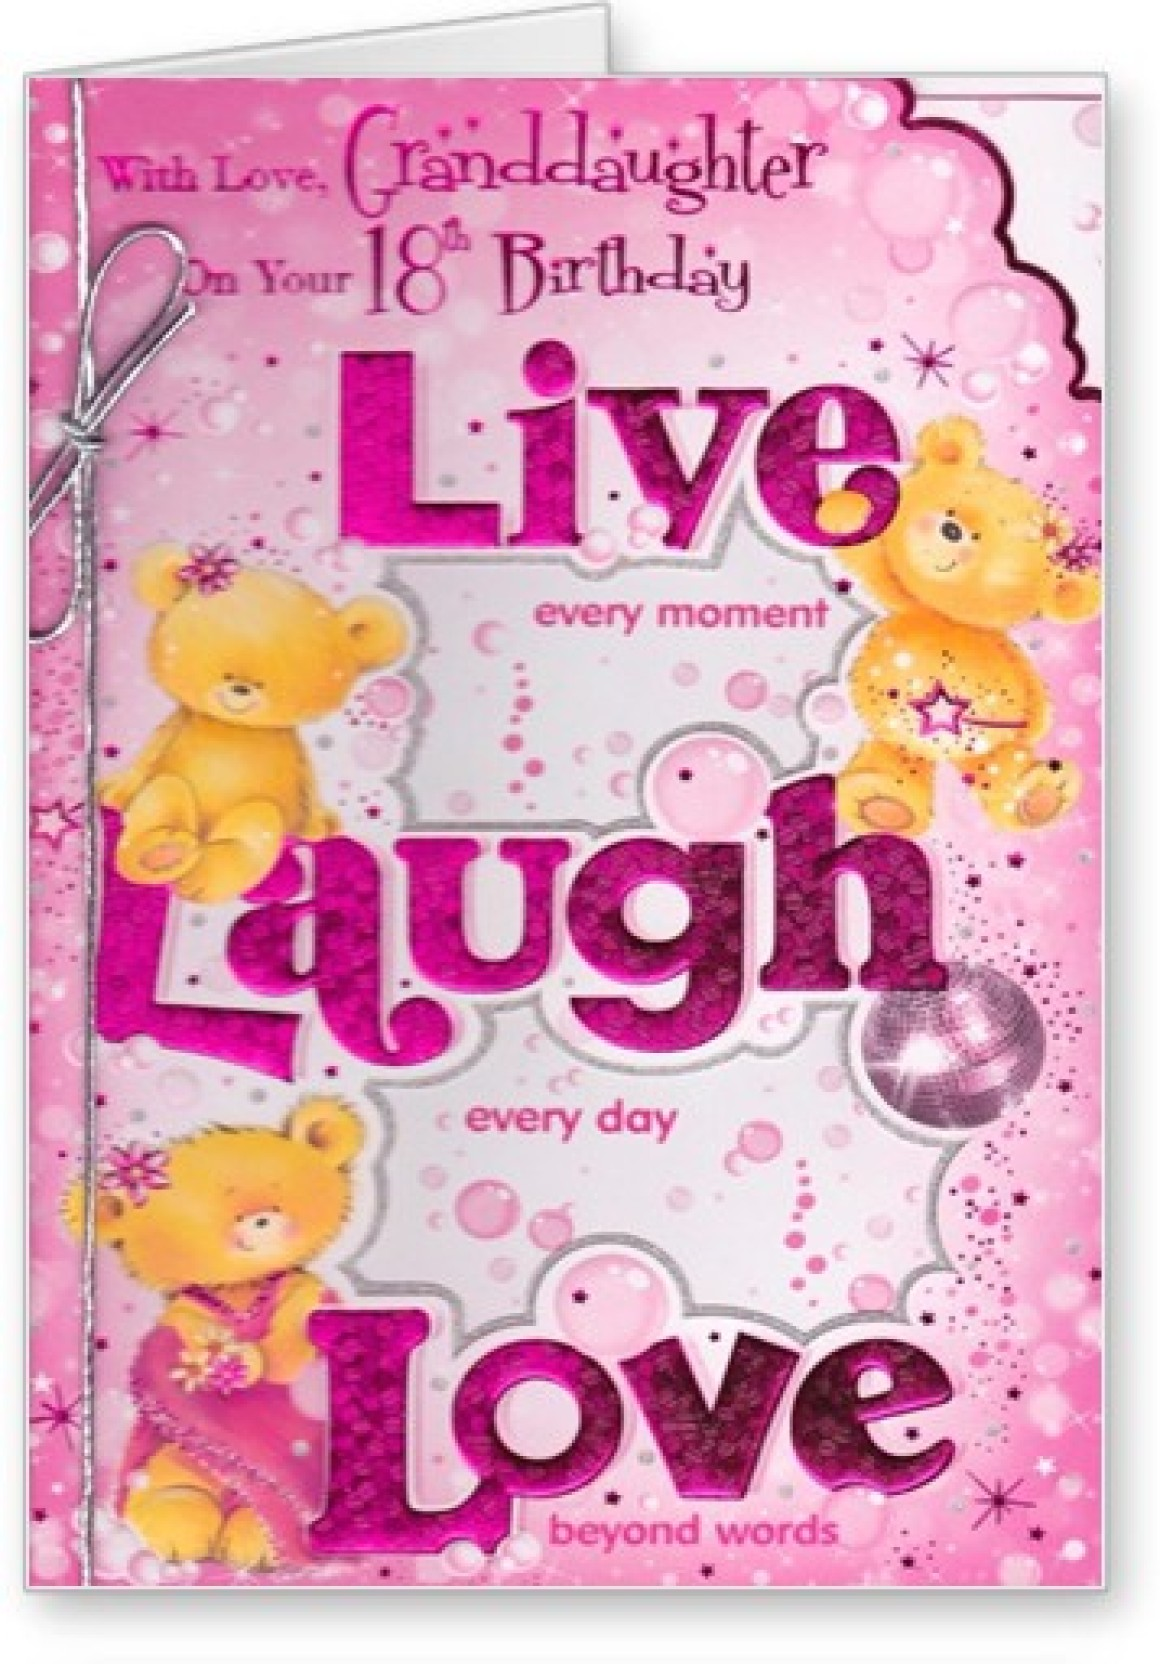 Lolprint Granddaughter 18th Birthday Greeting Card Price In India